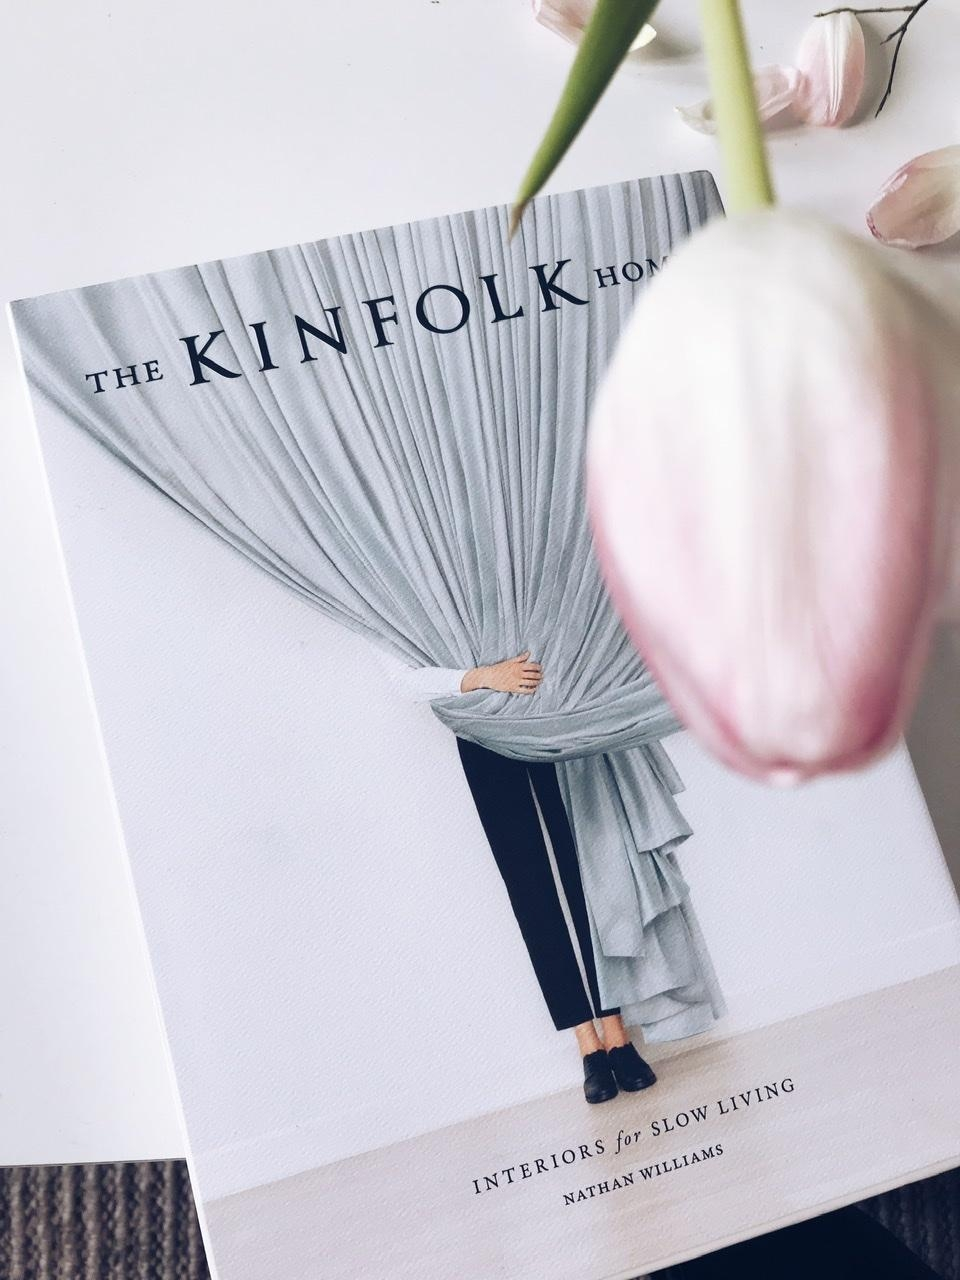 k l a s s i k e r 🦋